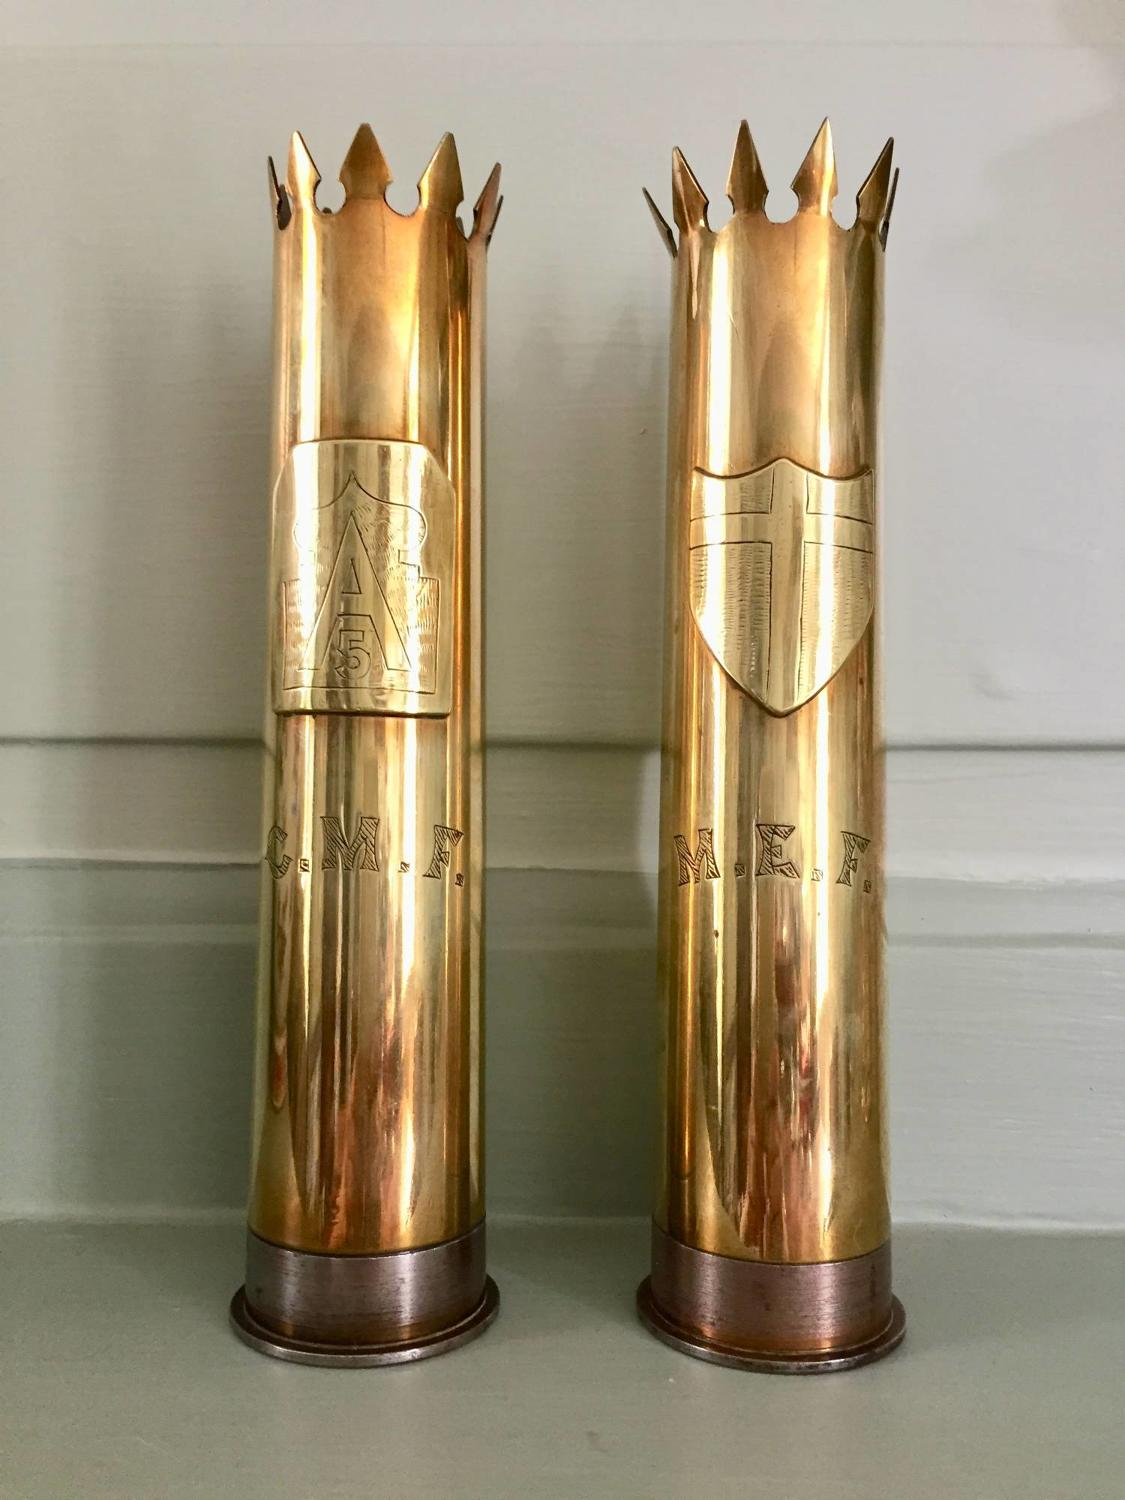 Pair of WWII Trench Art Vases - Fifth U.S. Army